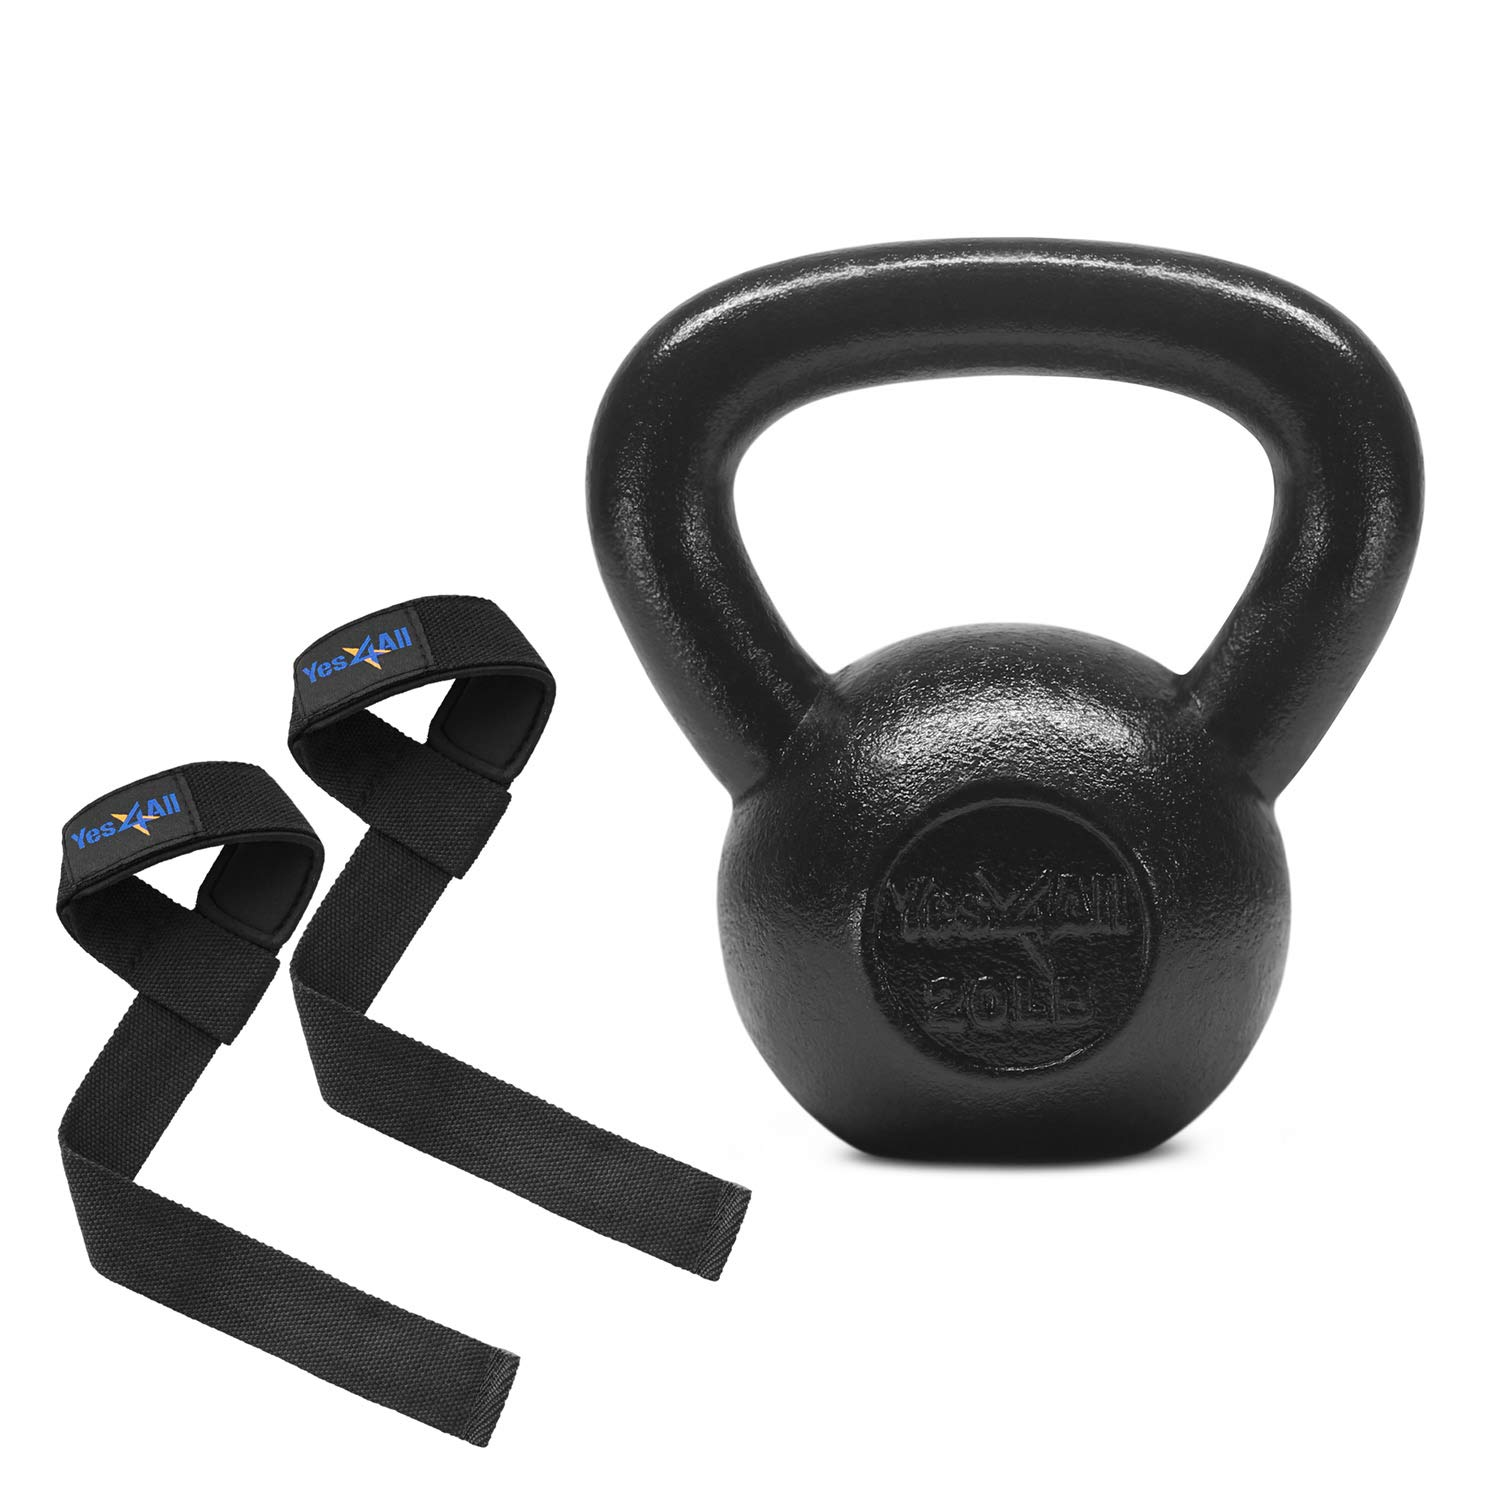 Yes4All Solid Cast Iron Kettlebell Weights Set – Great for Full Body Workout and Strength Training by Yes4All (Image #1)